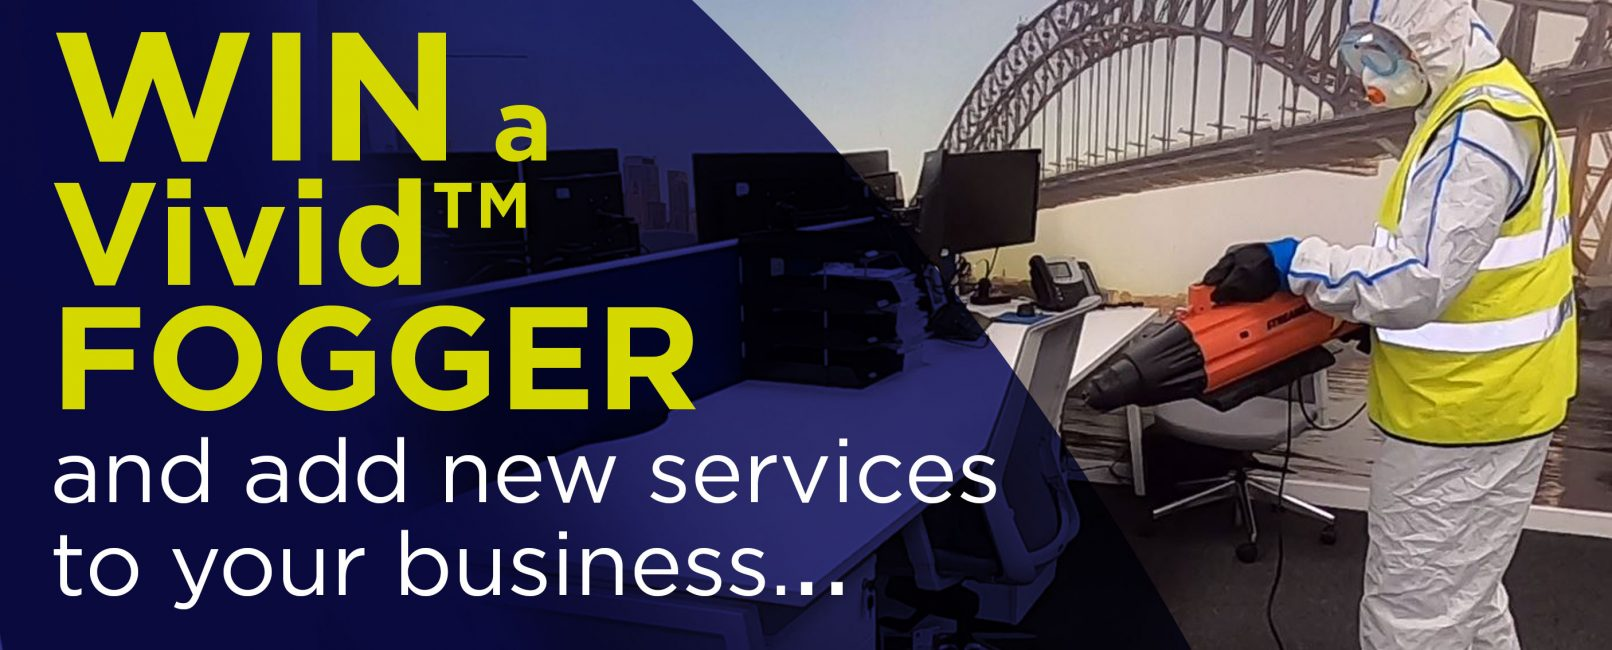 WIN a Vivid™ FOGGER and add new services to your business? banner